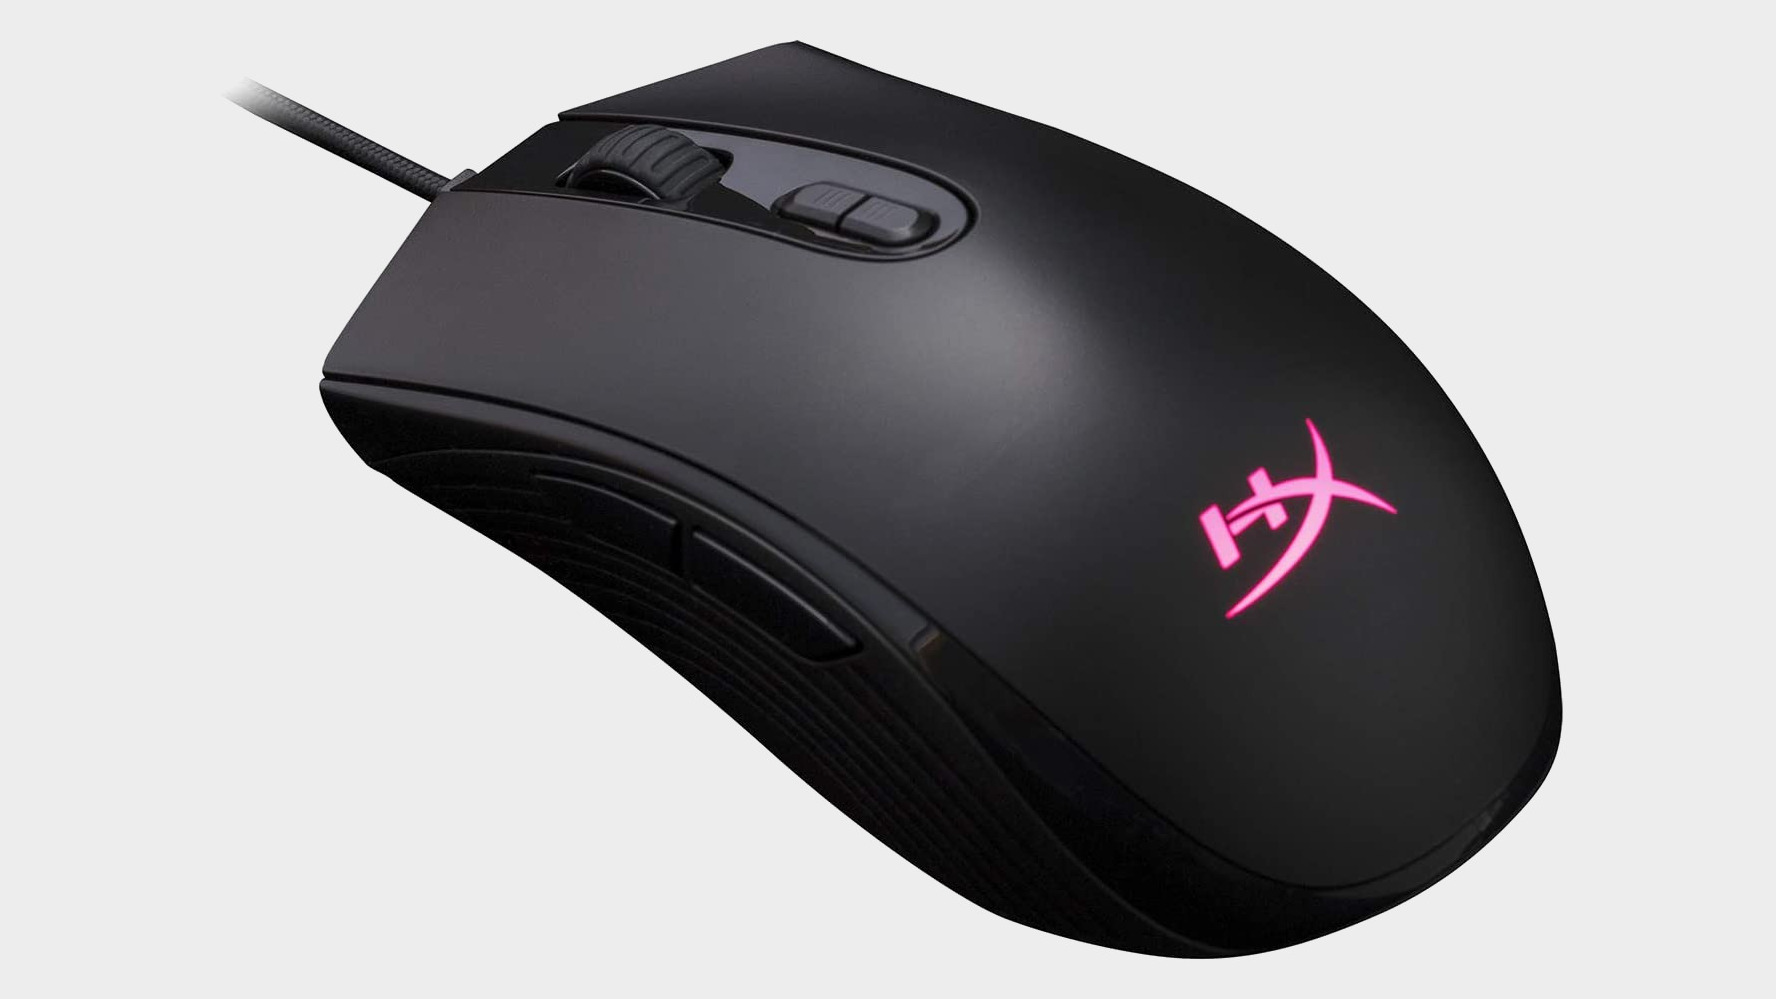 Grab a HyperX Pulsefire Core gaming mouse for $20 today only